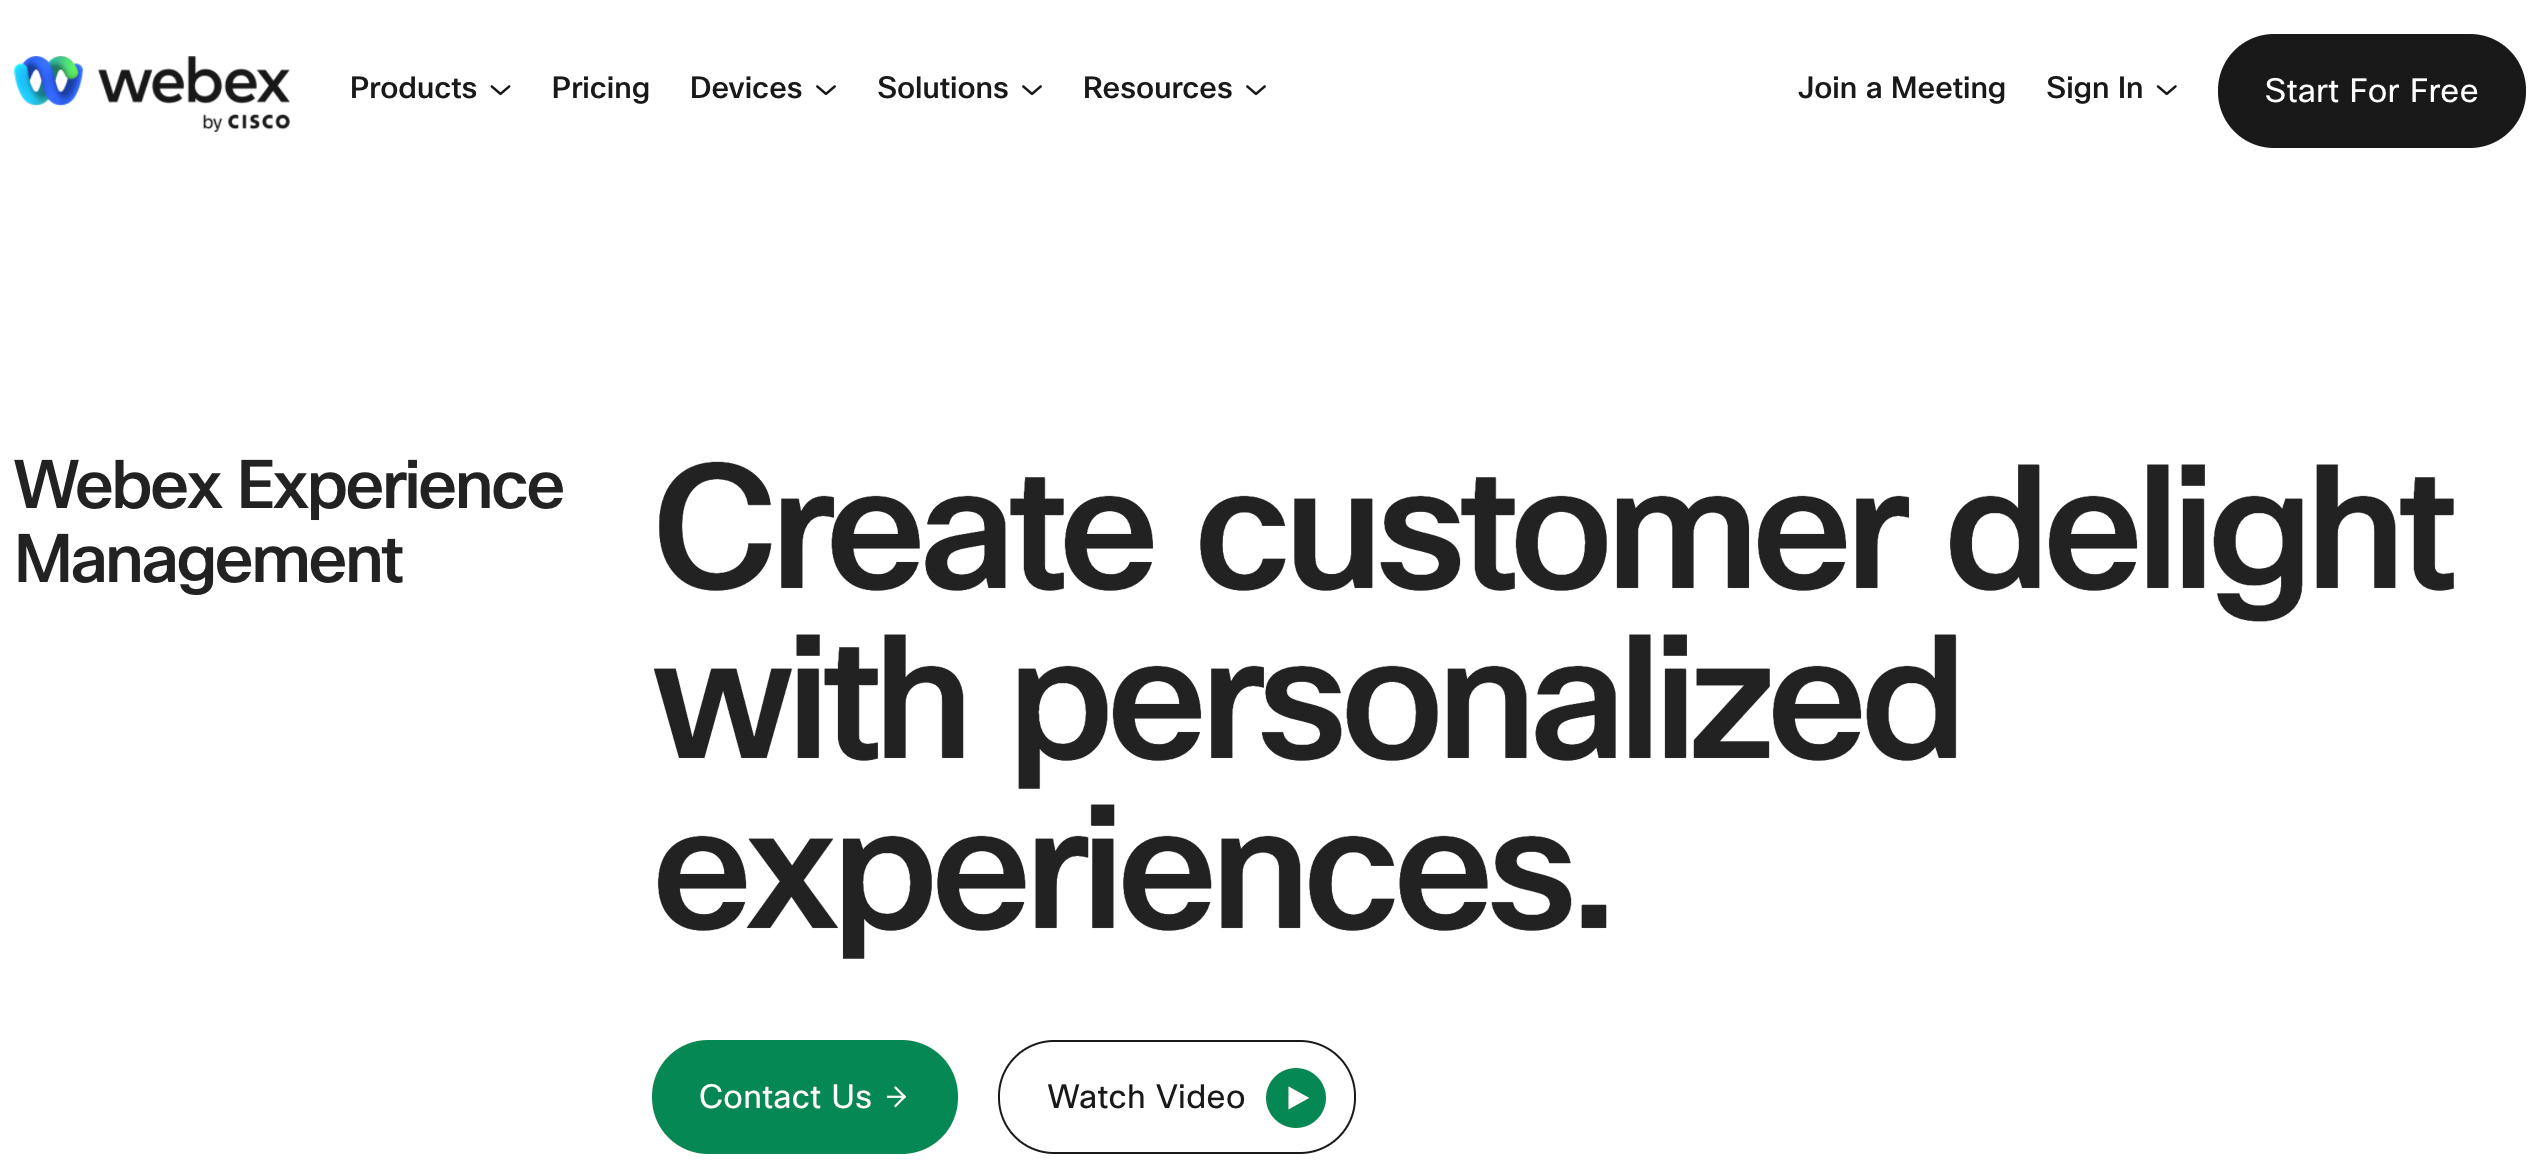 Personalize customer experience end-to-end with Webex Experience Management